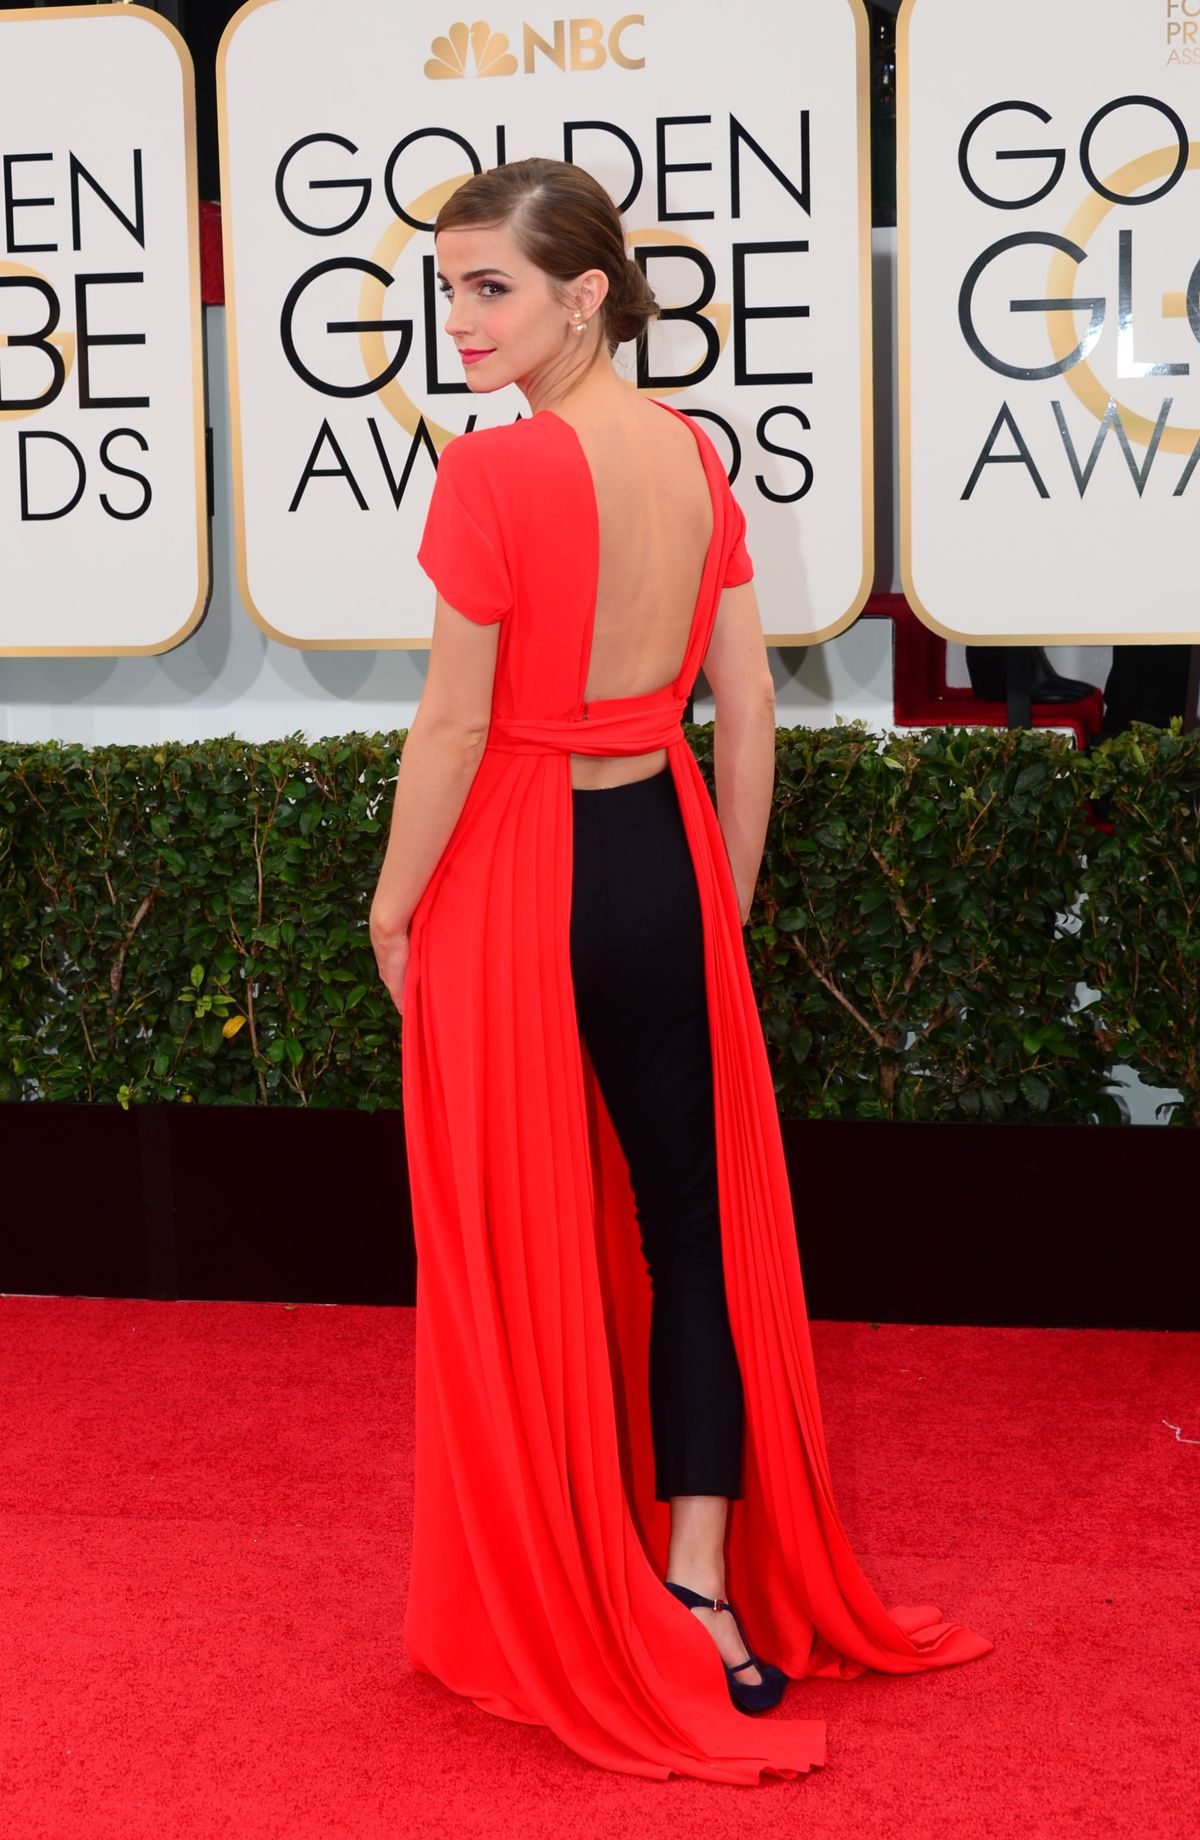 Emma Watson in Pants at the Golden Globes